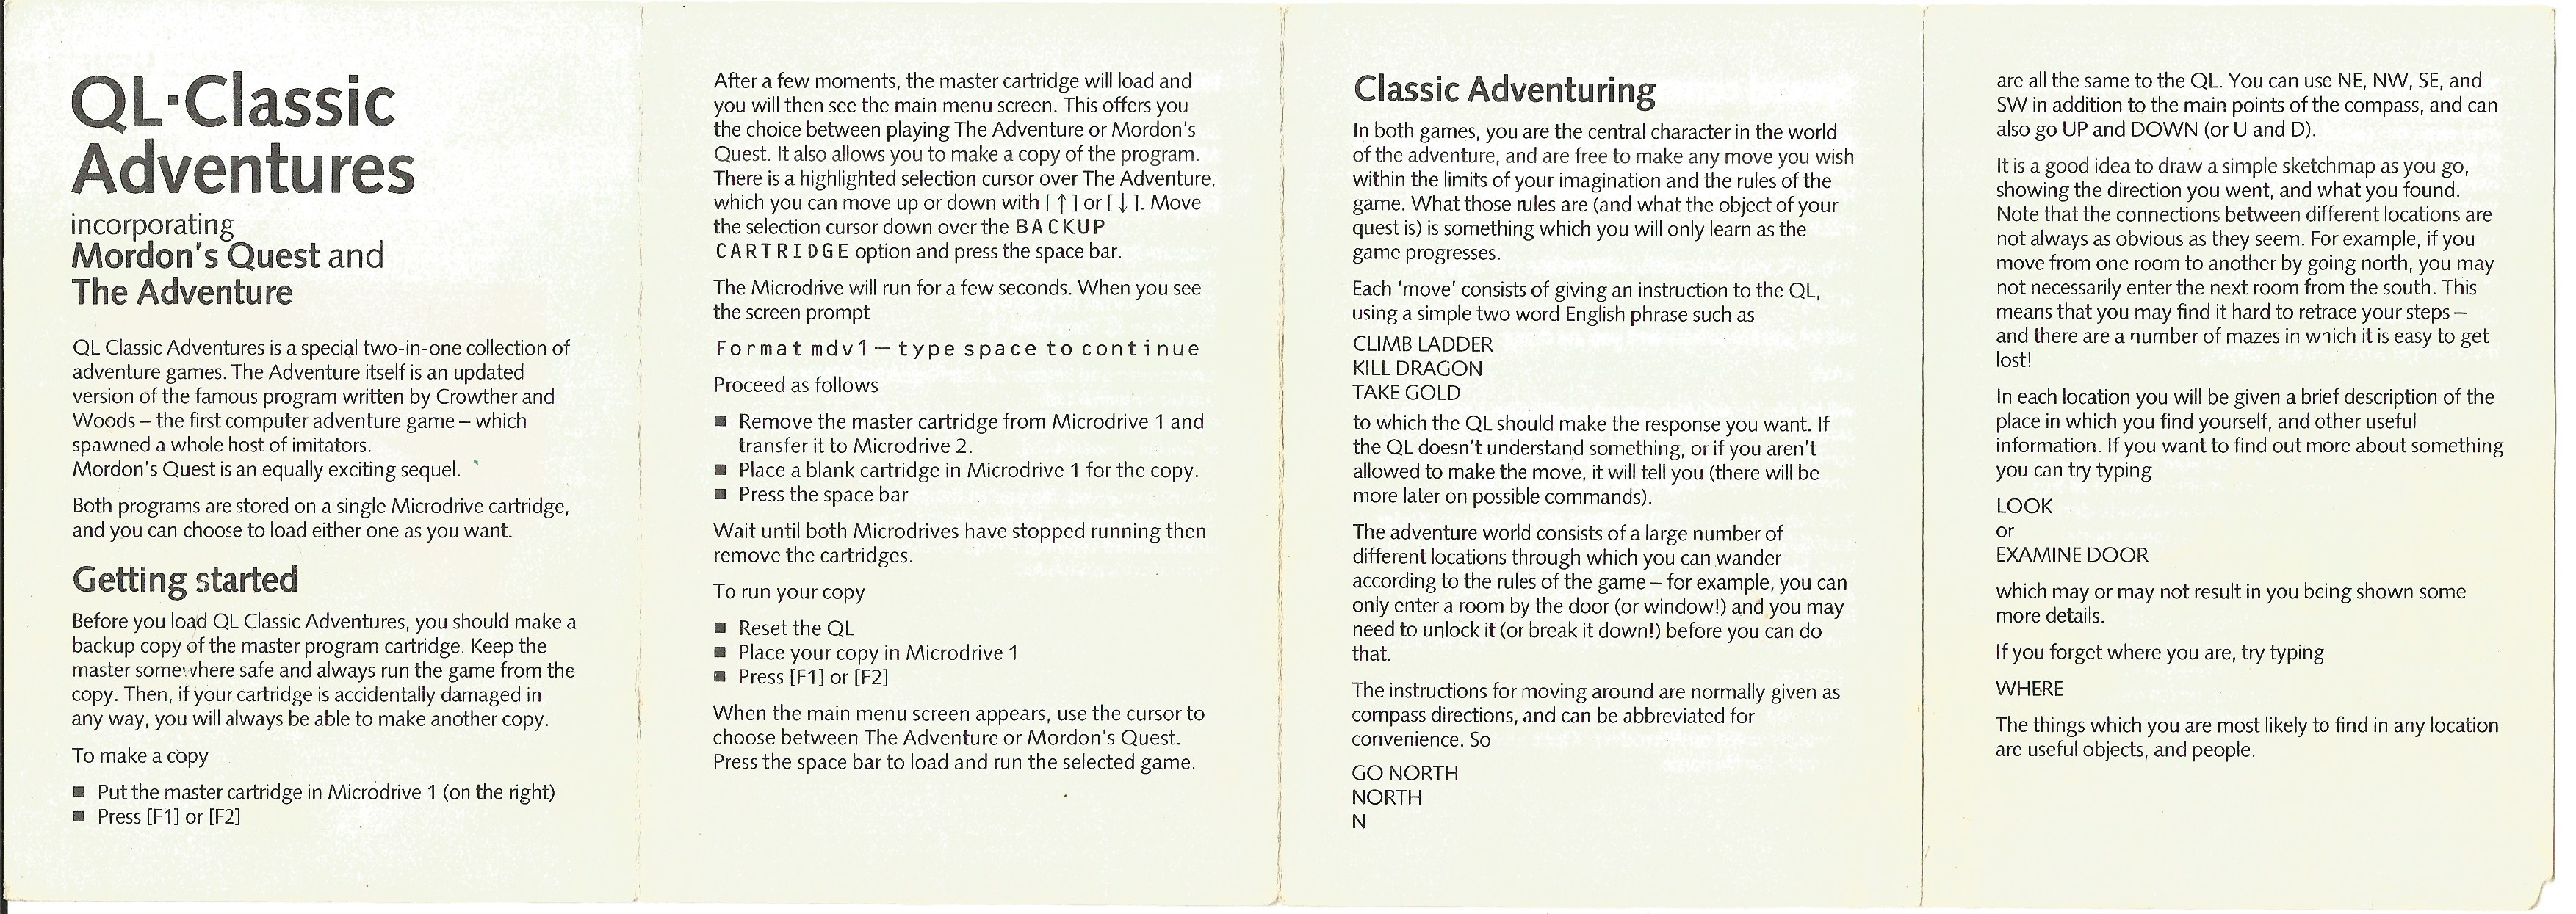 Abersoft - Classic Adventures Manual.jpg